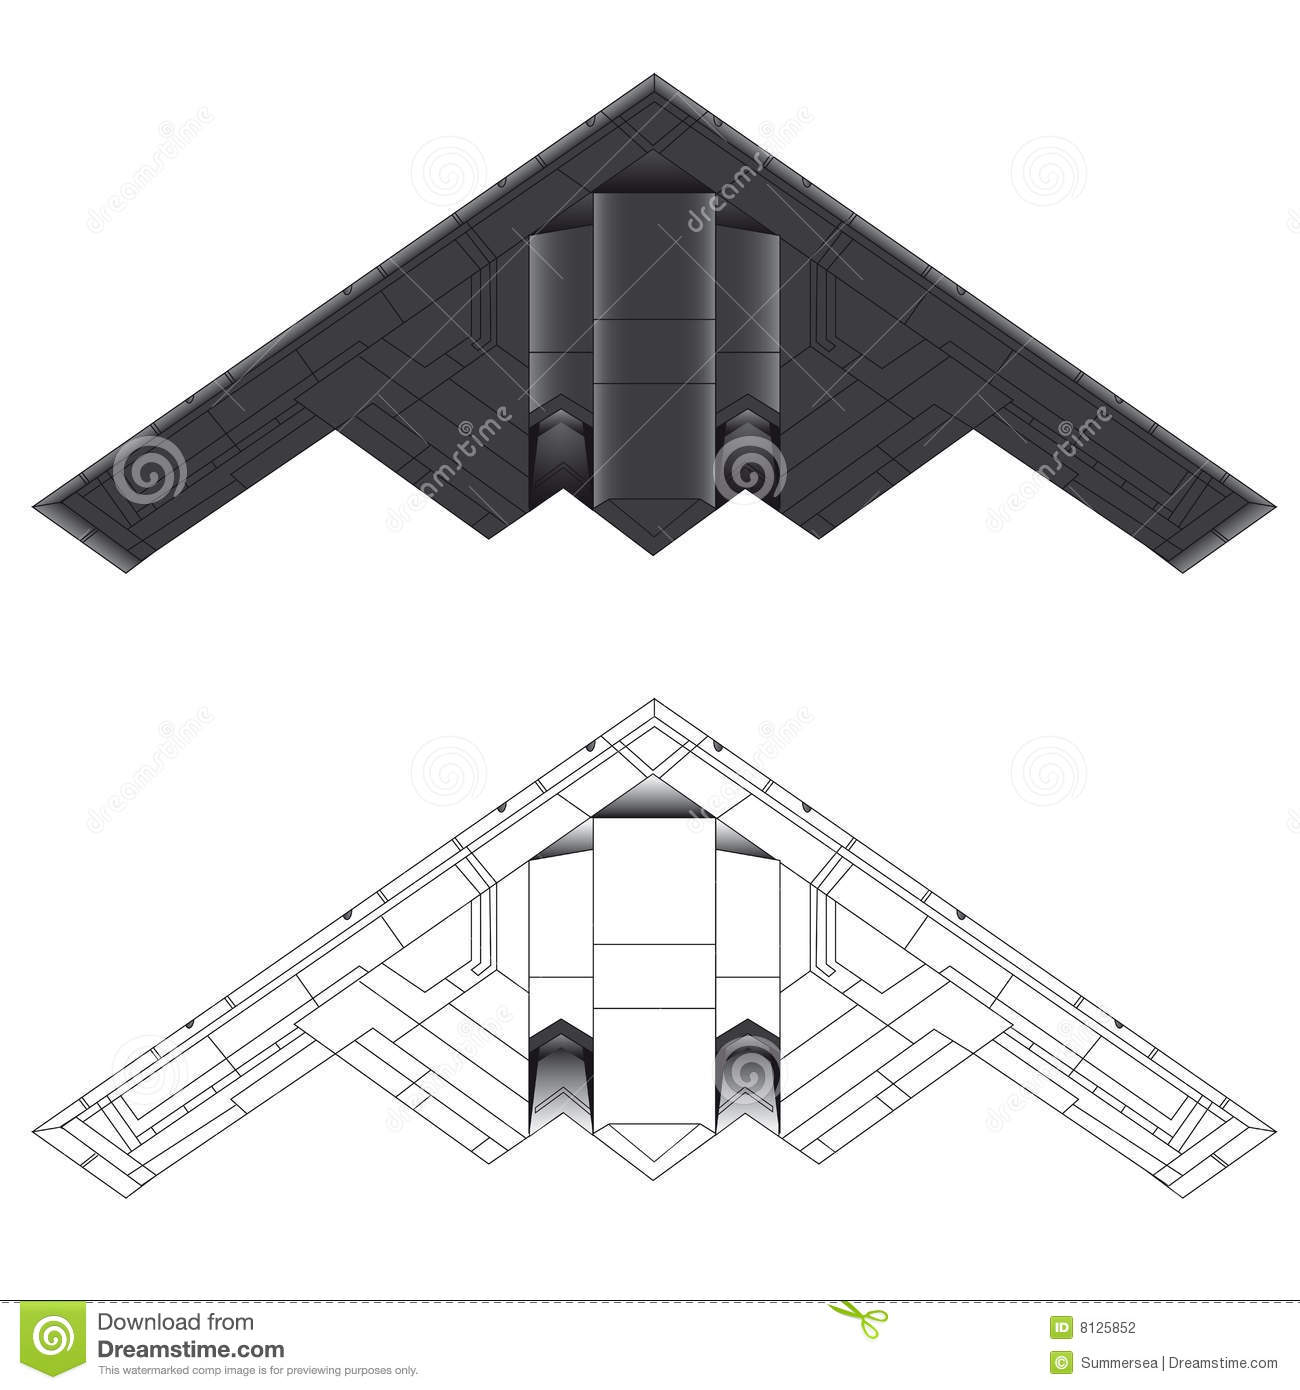 B-2 stealth bomber bottom view vector illustration in colour and outline